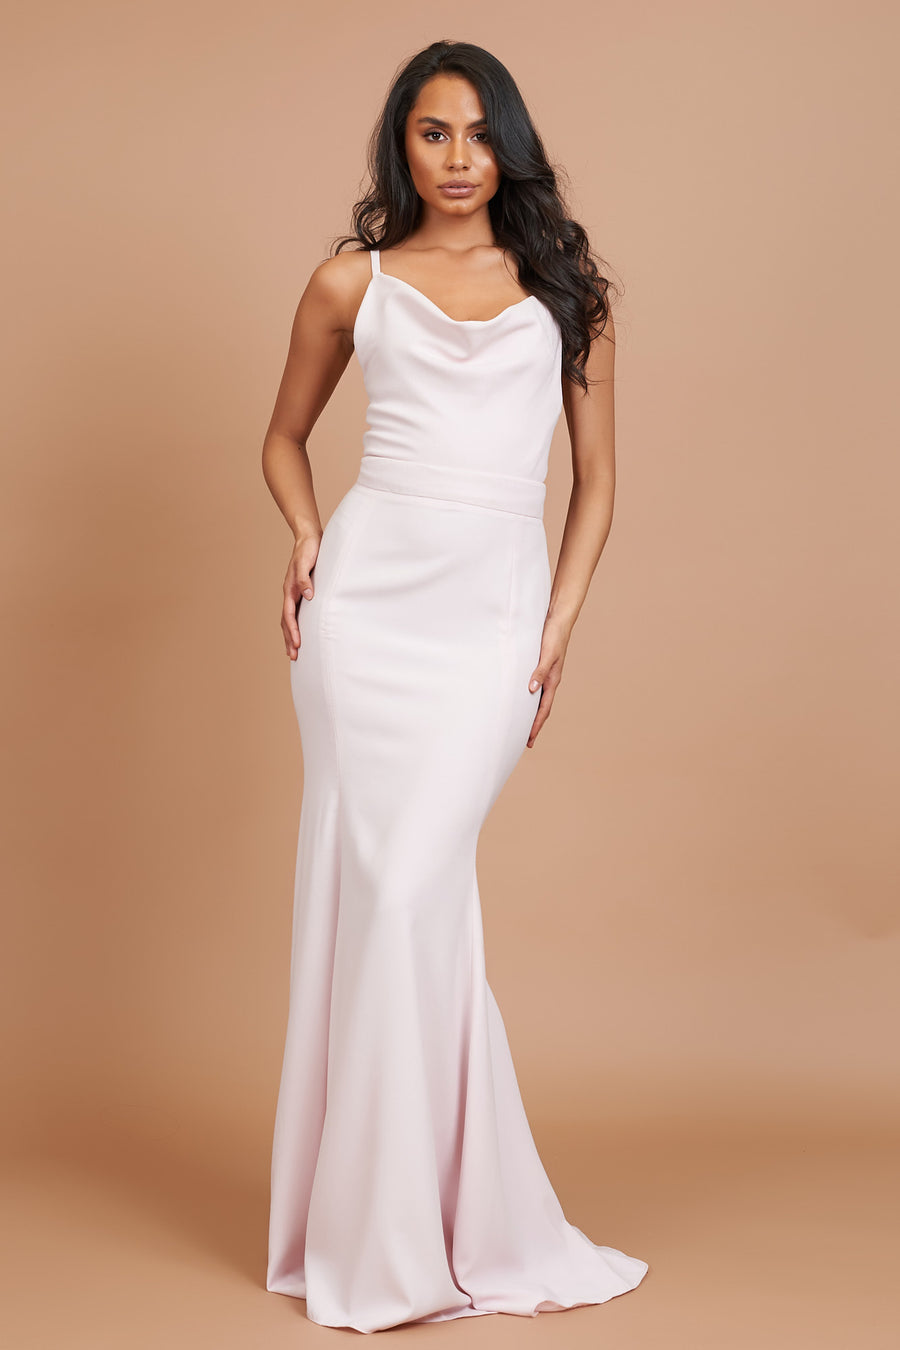 Cowl Neck Bridesmaid Dress